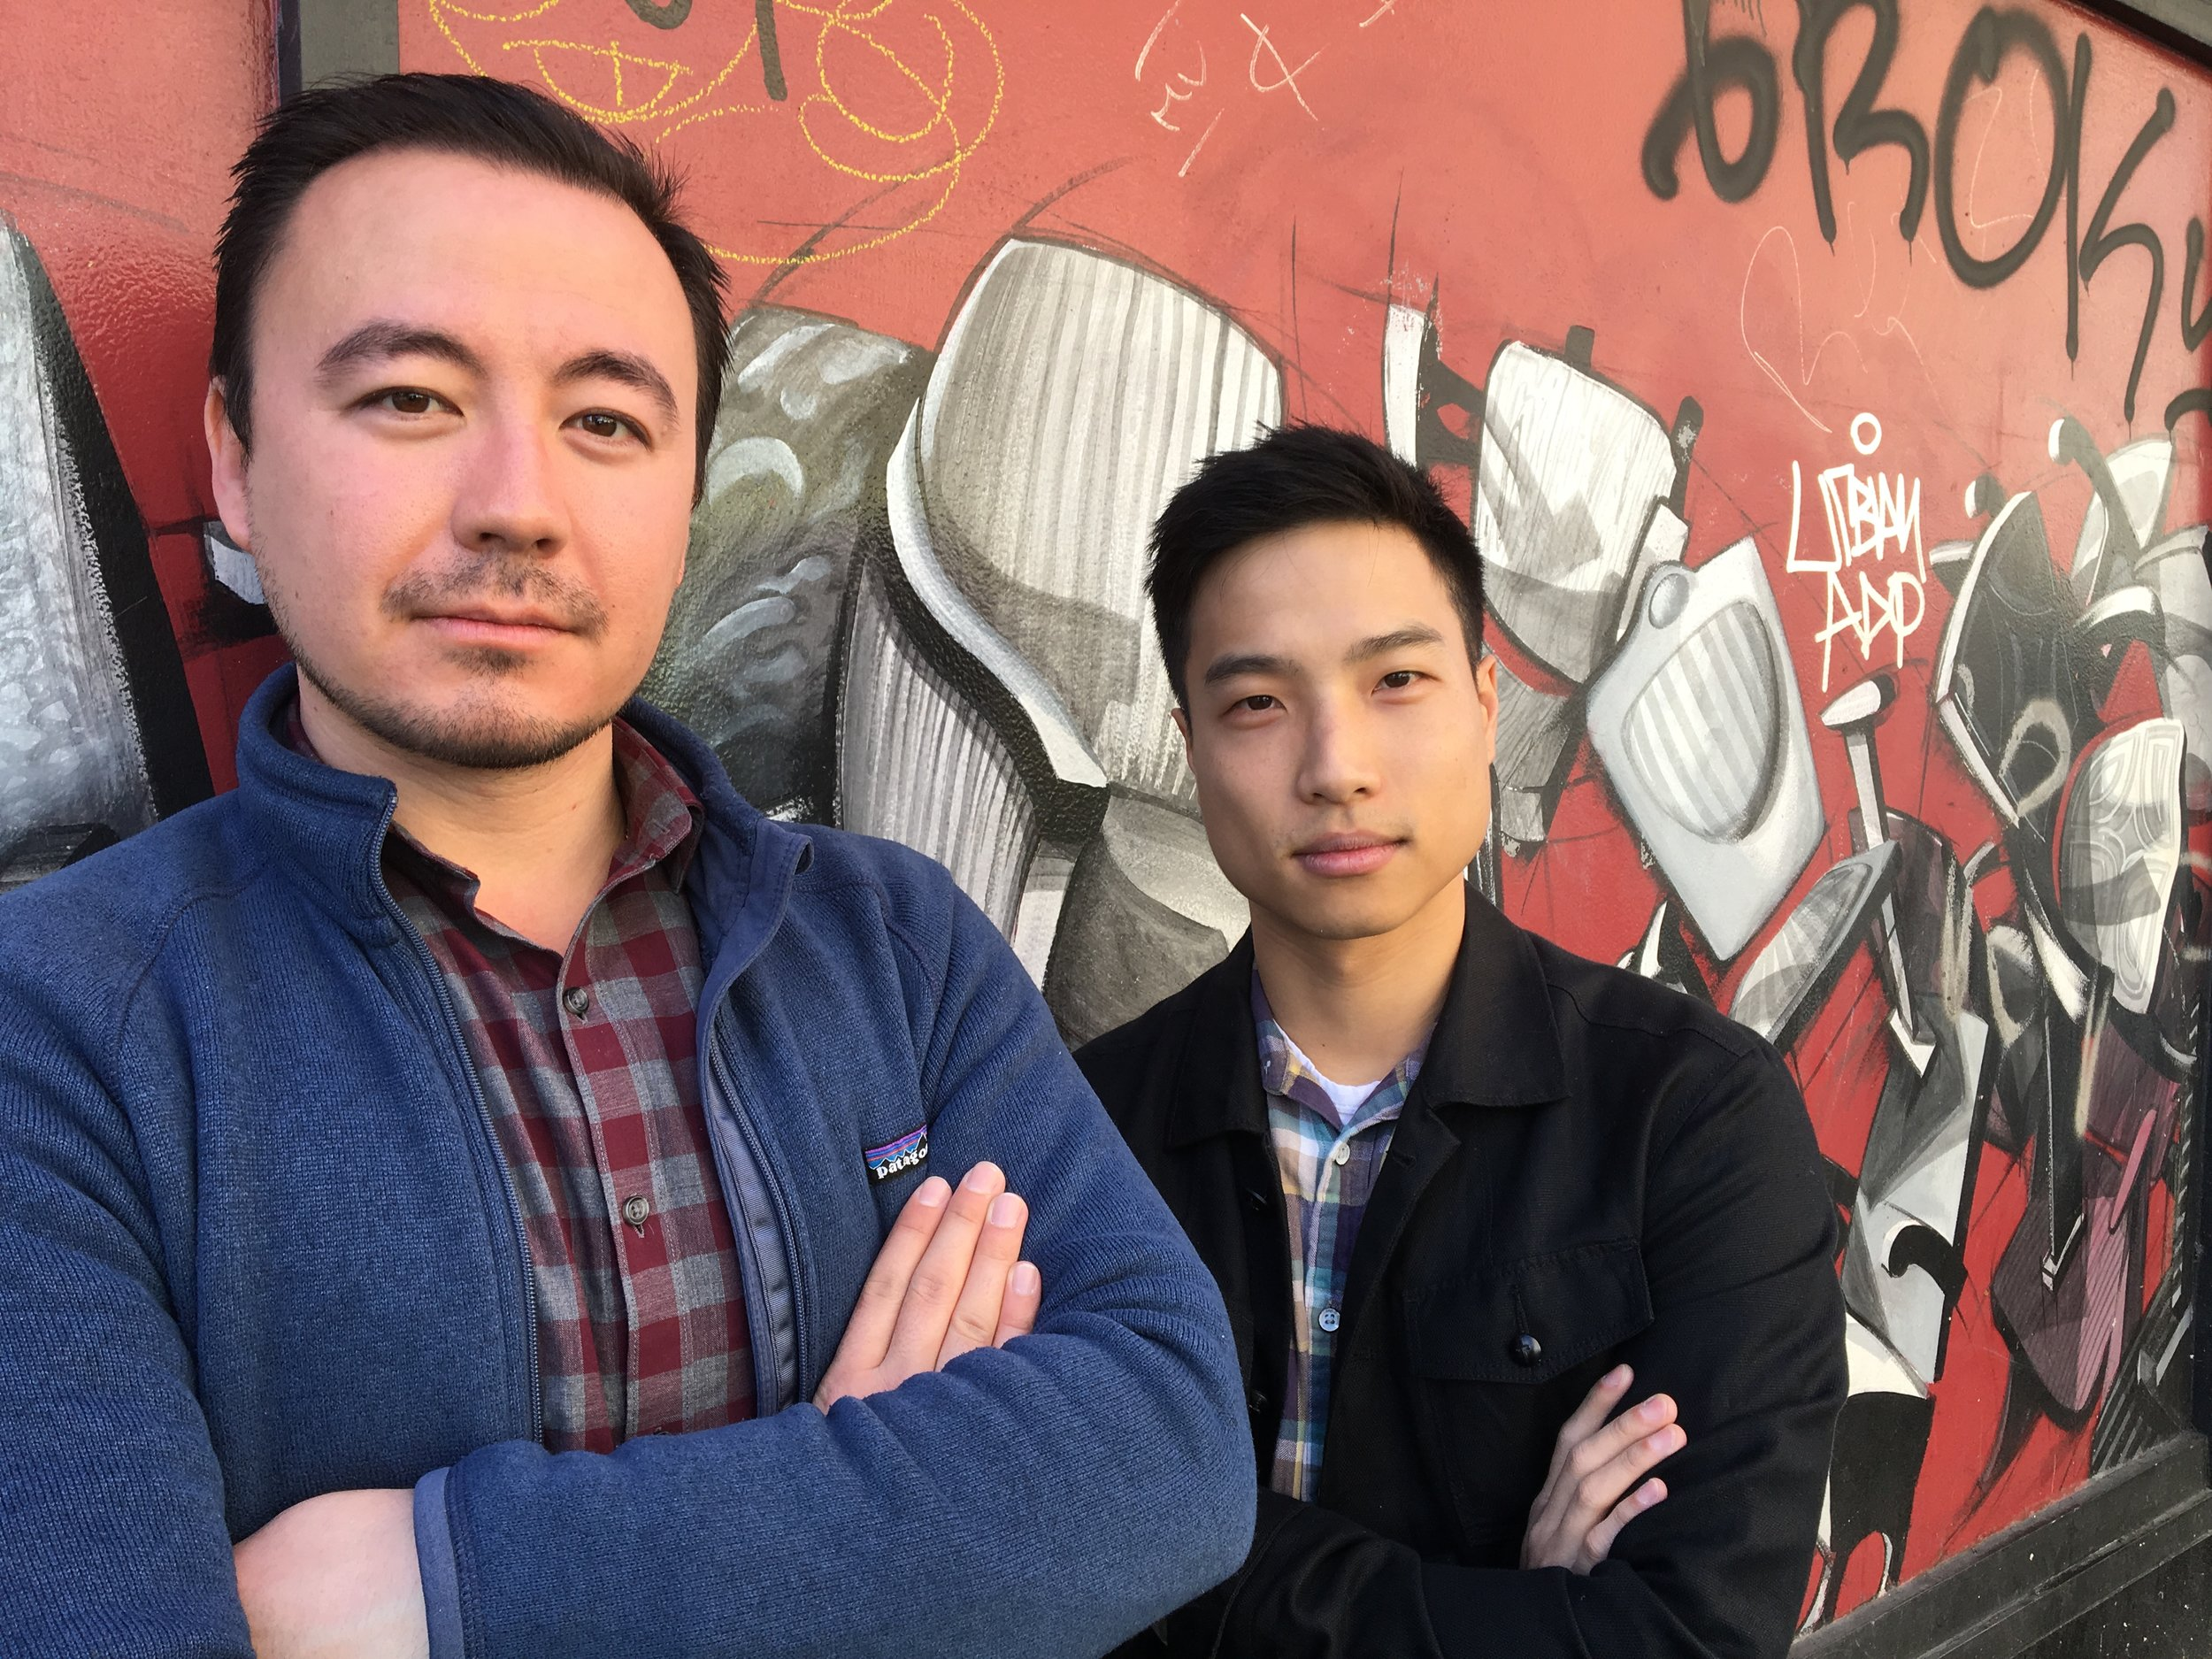 Arcadi Kolchak and Richard So are millennials working to save their generation and others from an epidemic of hepatitis B in the Asian and Pacific Islander community.